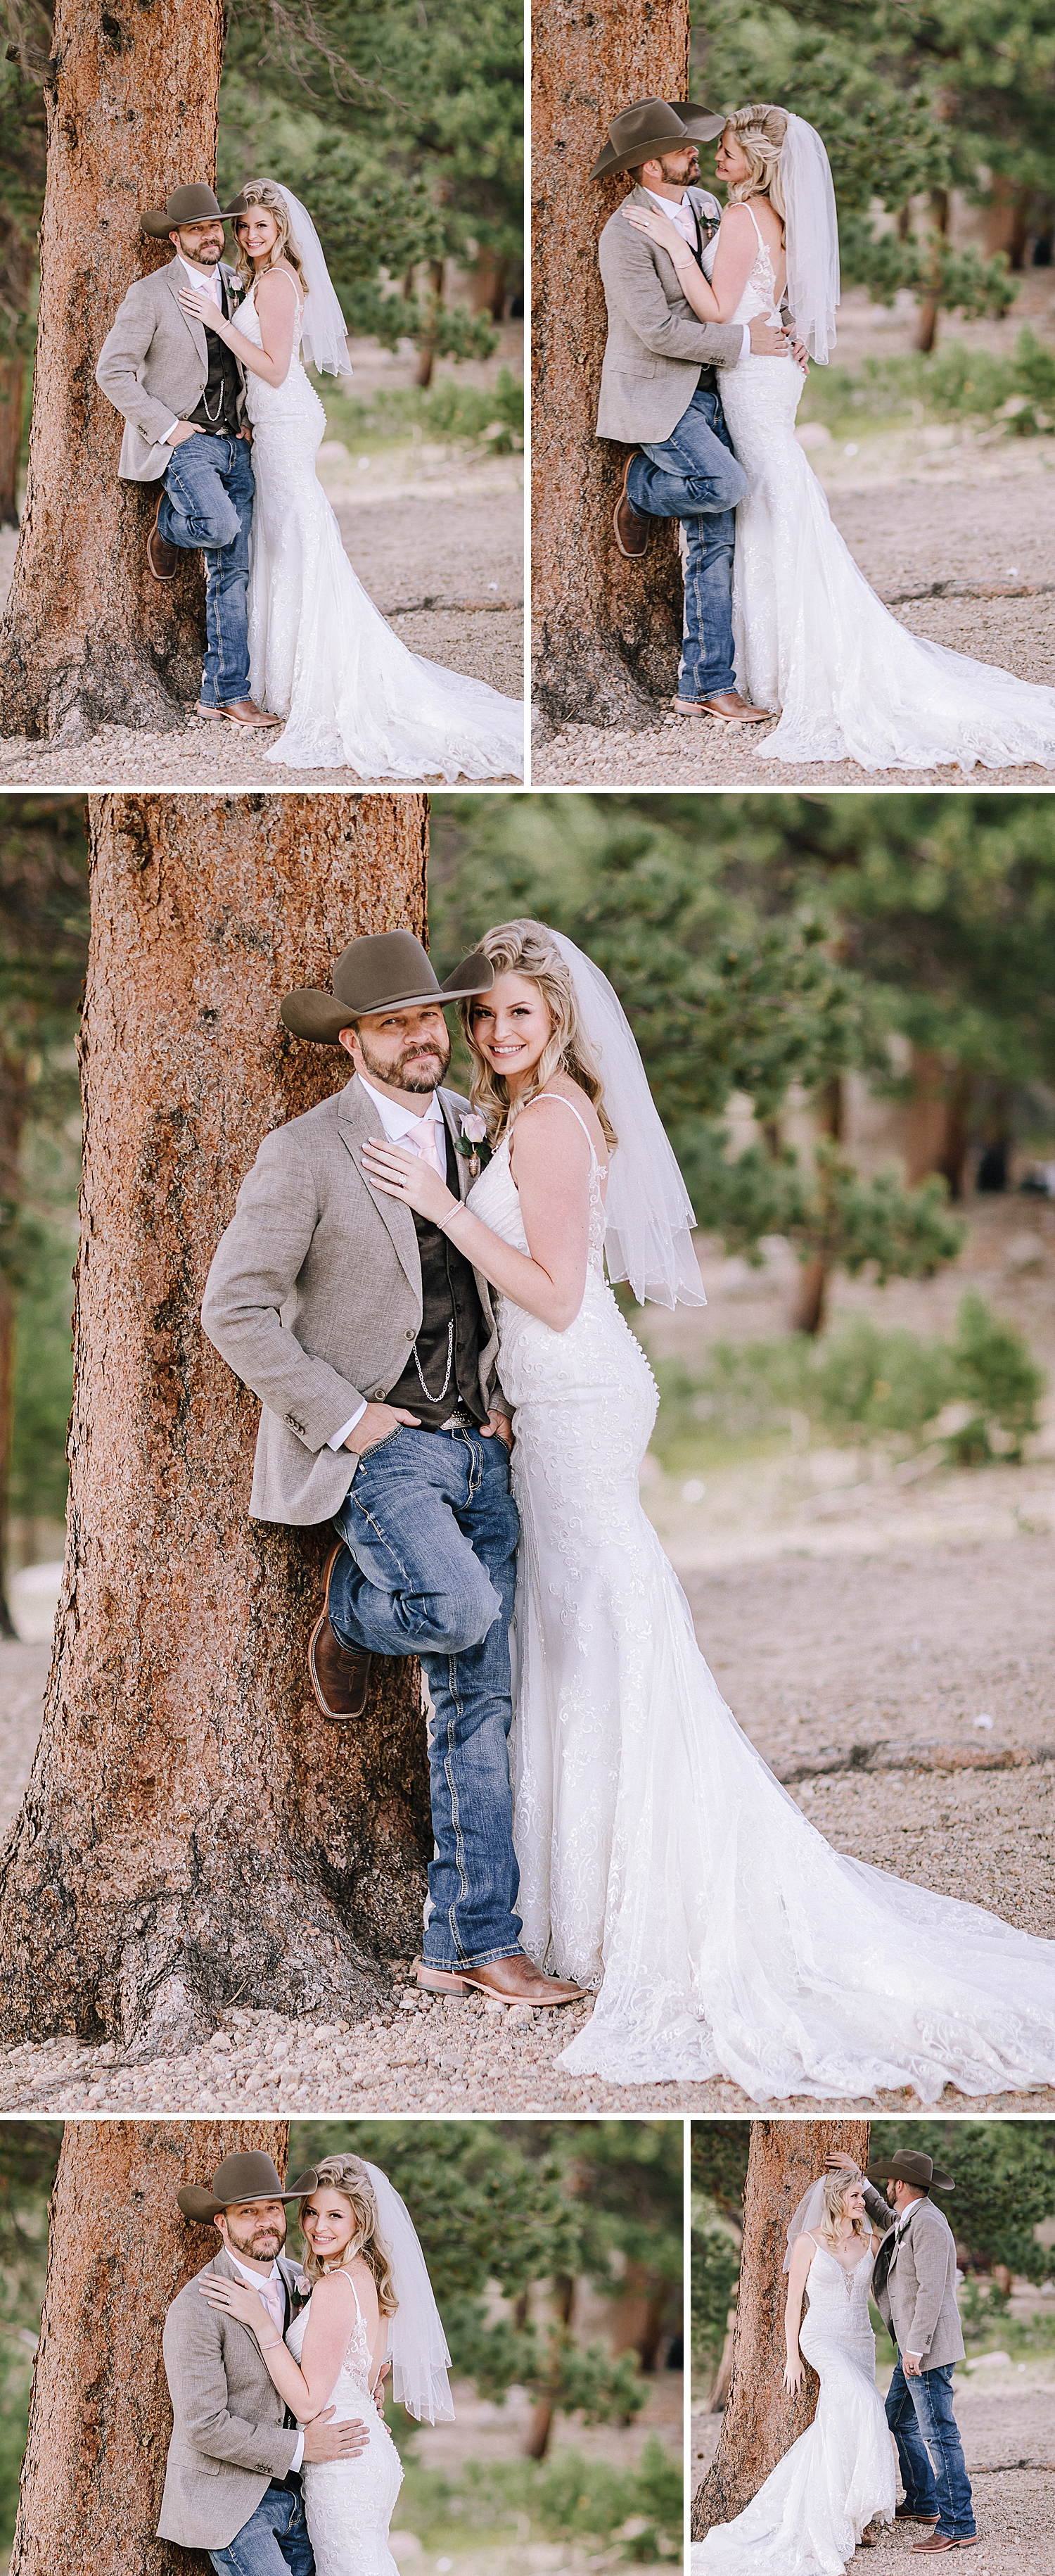 Carly-Barton-Photography-Rocky-Mountain-National-Park-Estes-Park-Wedding-Elopement_0005.jpg